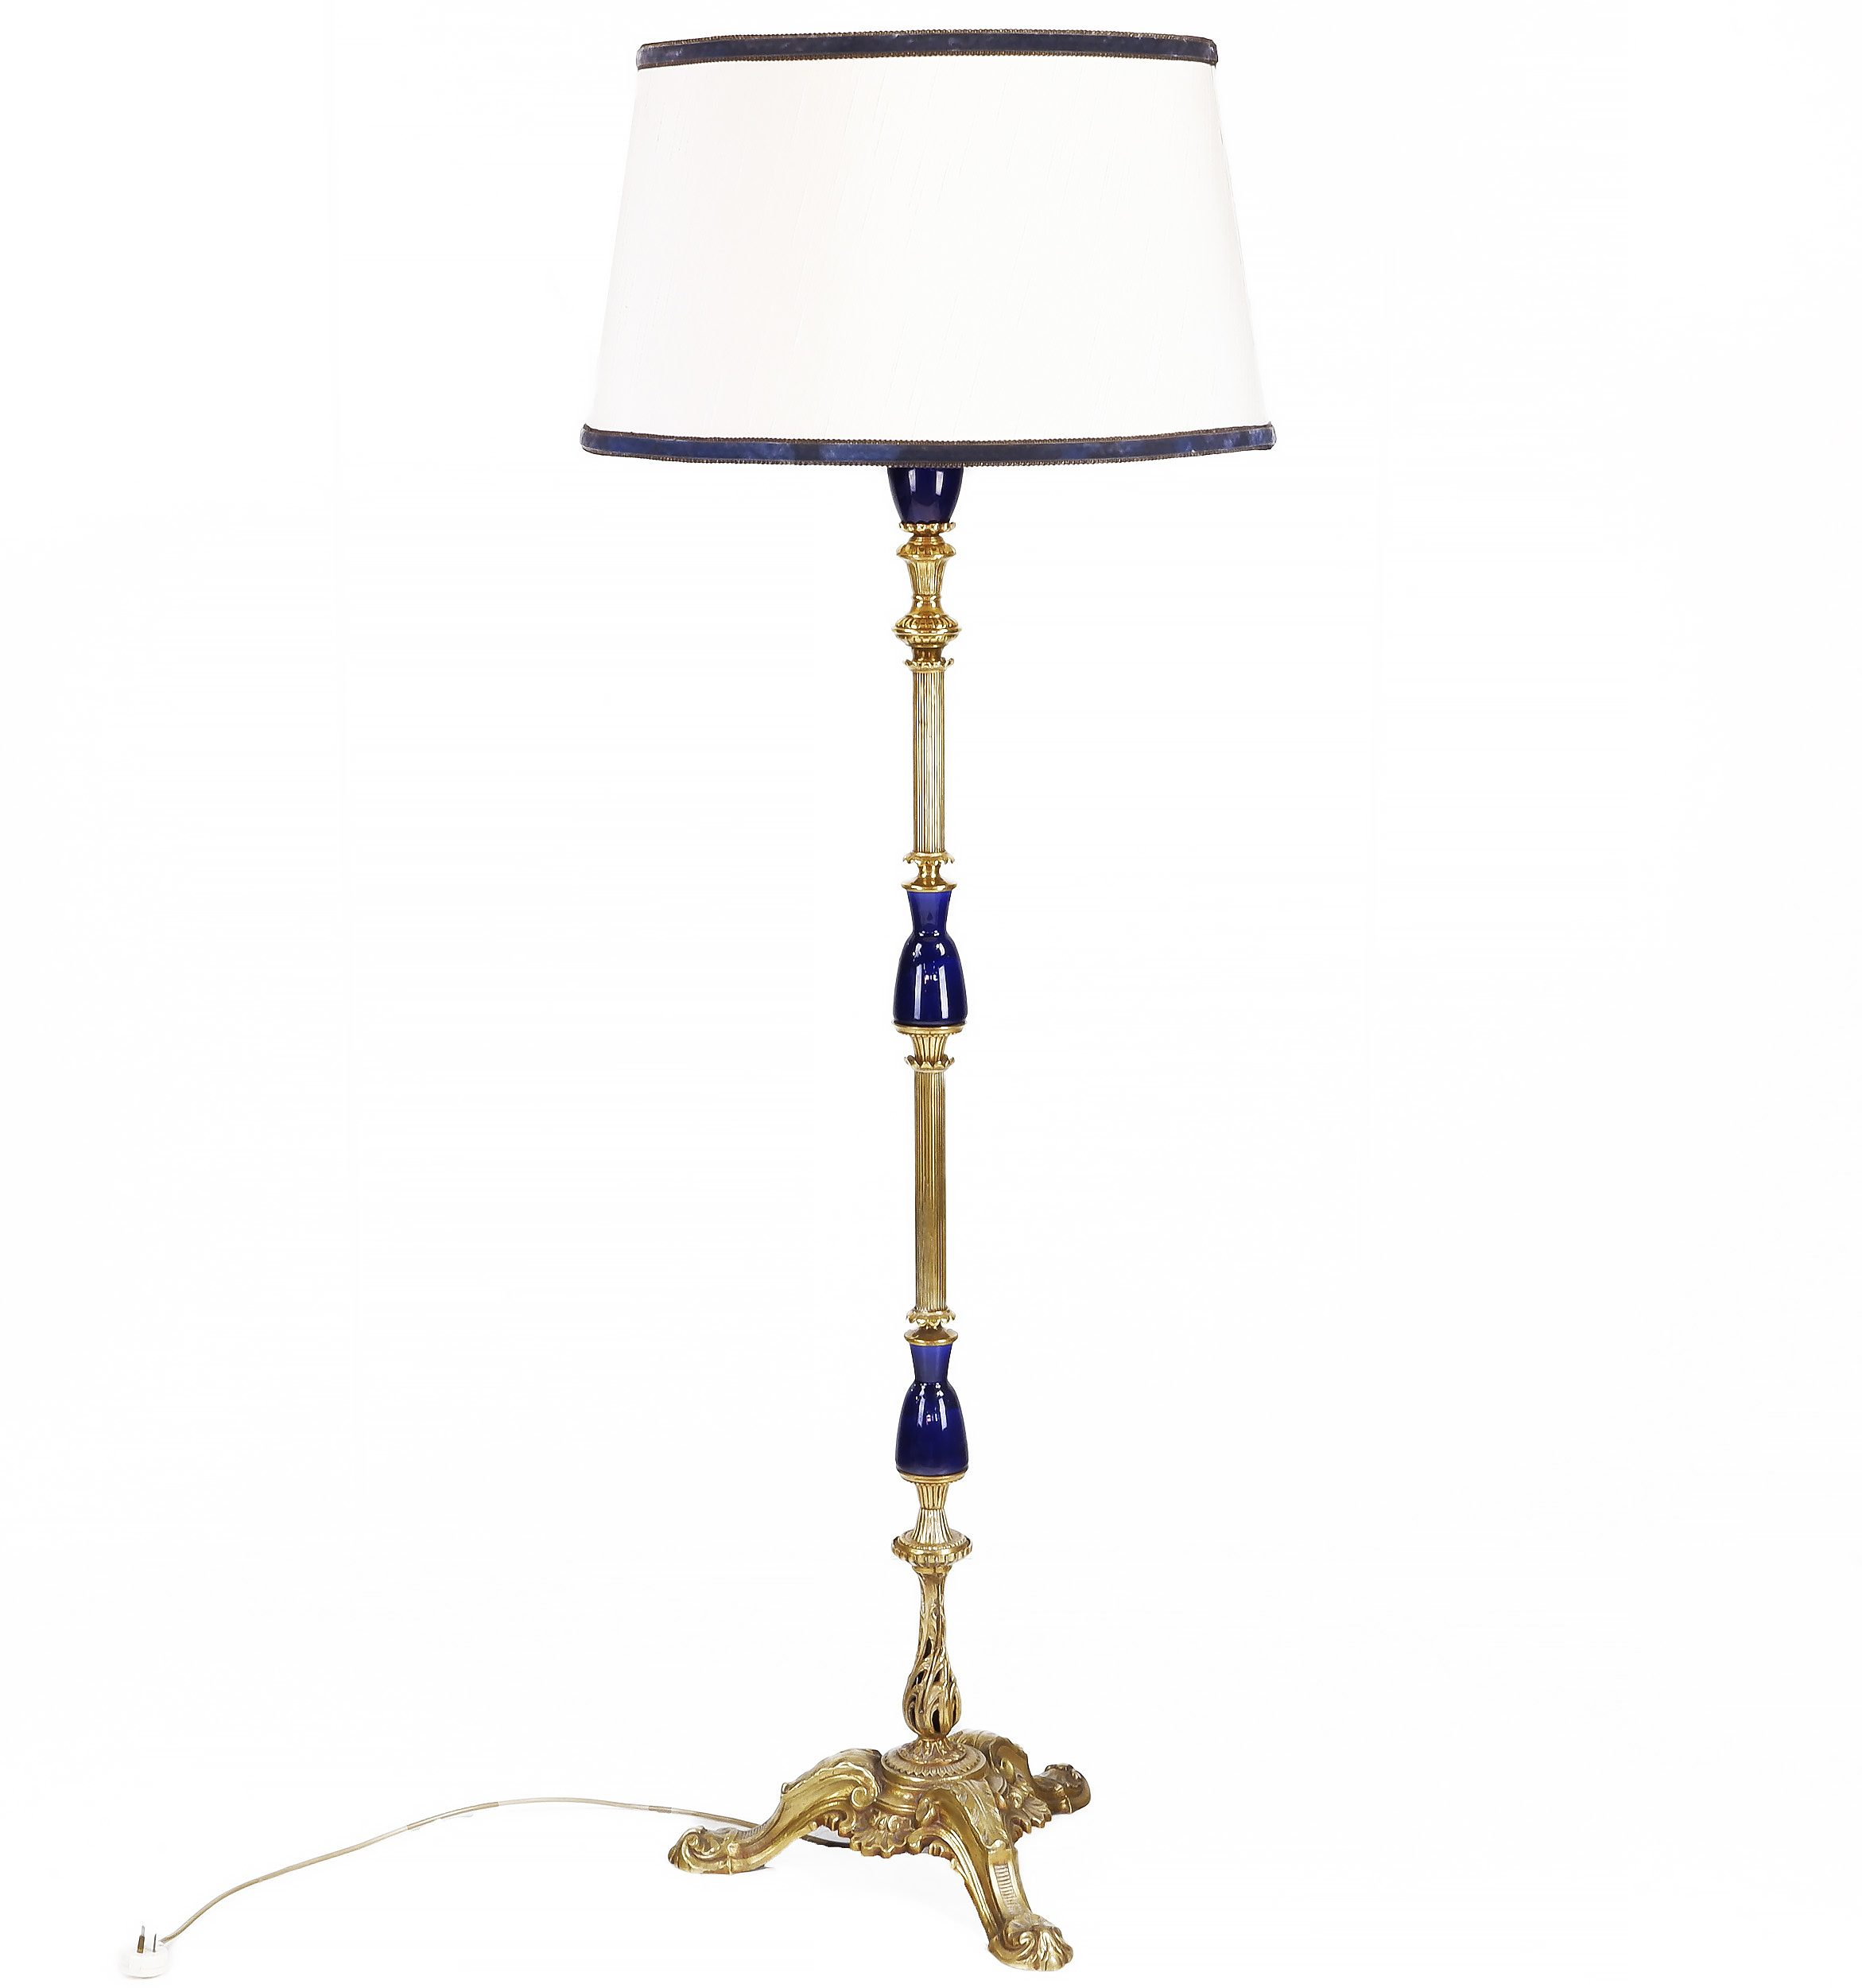 'Vintage Brass and Cobalt Blue Porcelain Floor Lamp'